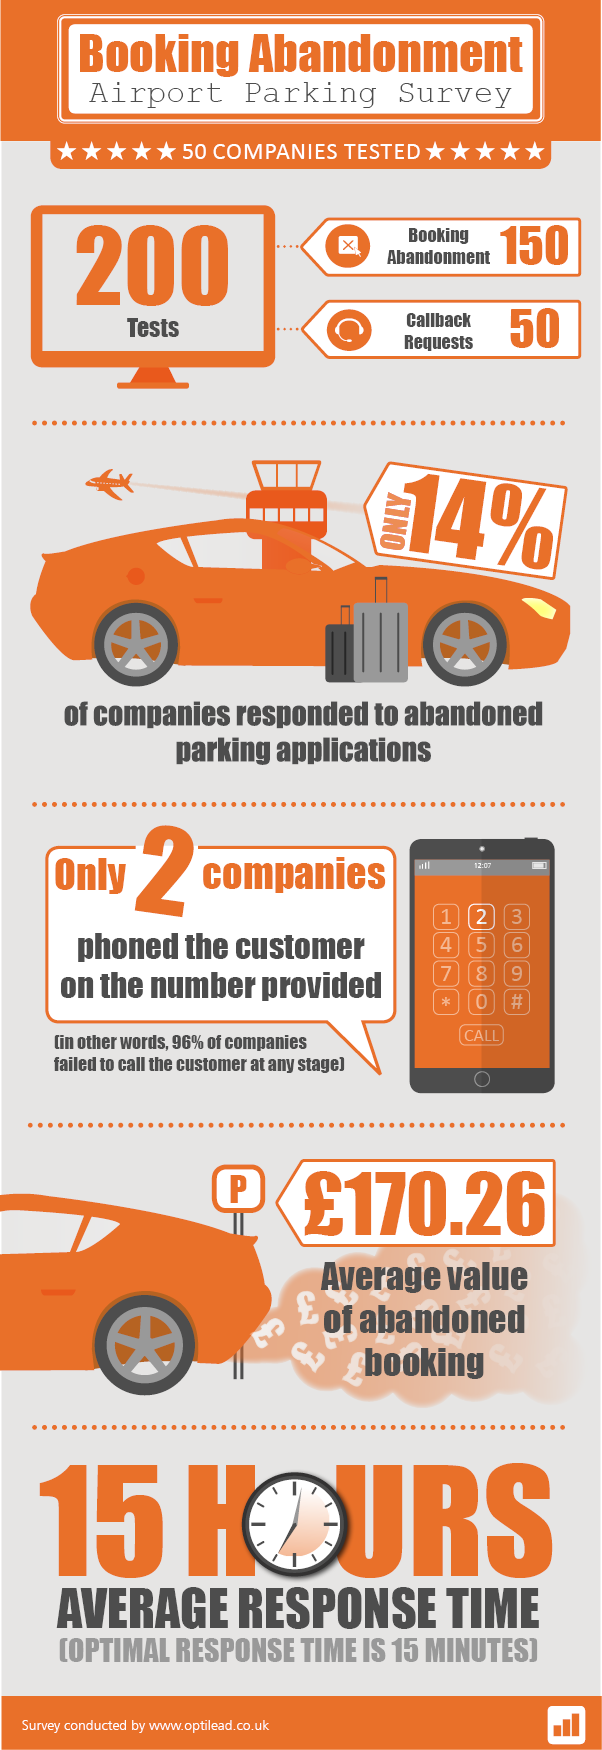 Booking abandonment in airport parking: infographic